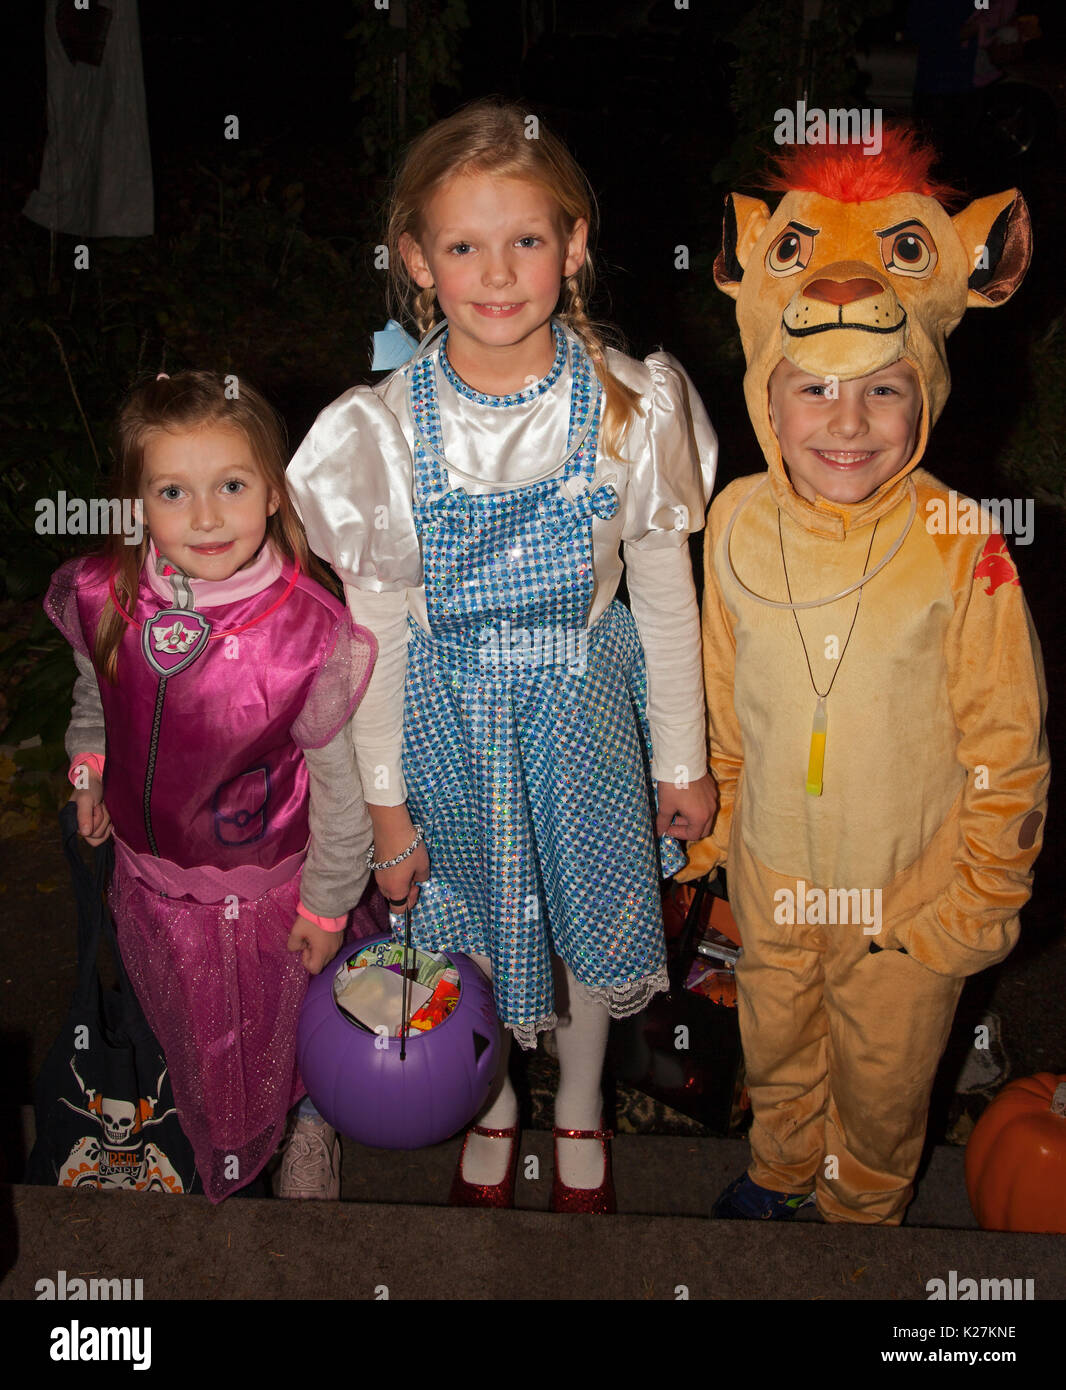 Dorothy, cowardly lion and a witch from the Wizard of OZ out for a night of Halloween trick or treating. St Paul Minnesota MN USA - Stock Image